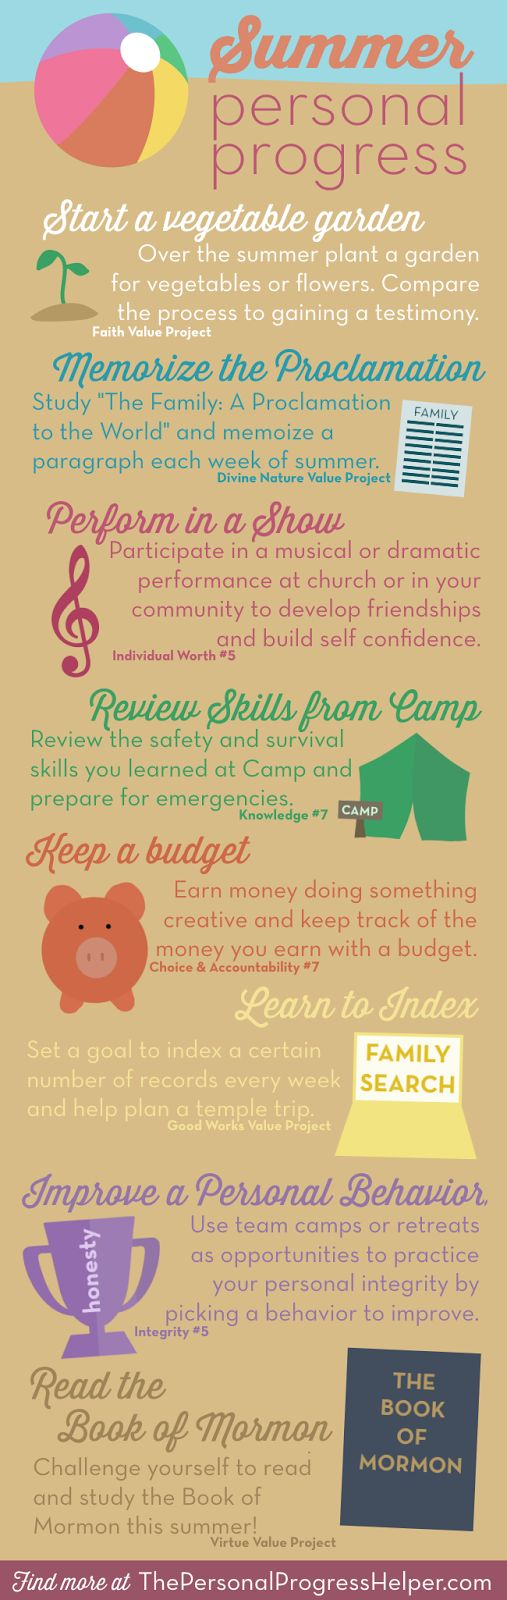 Summer Personal Progress Infographic with Fun Ideas in Each Value! from The Personal Progress Helper